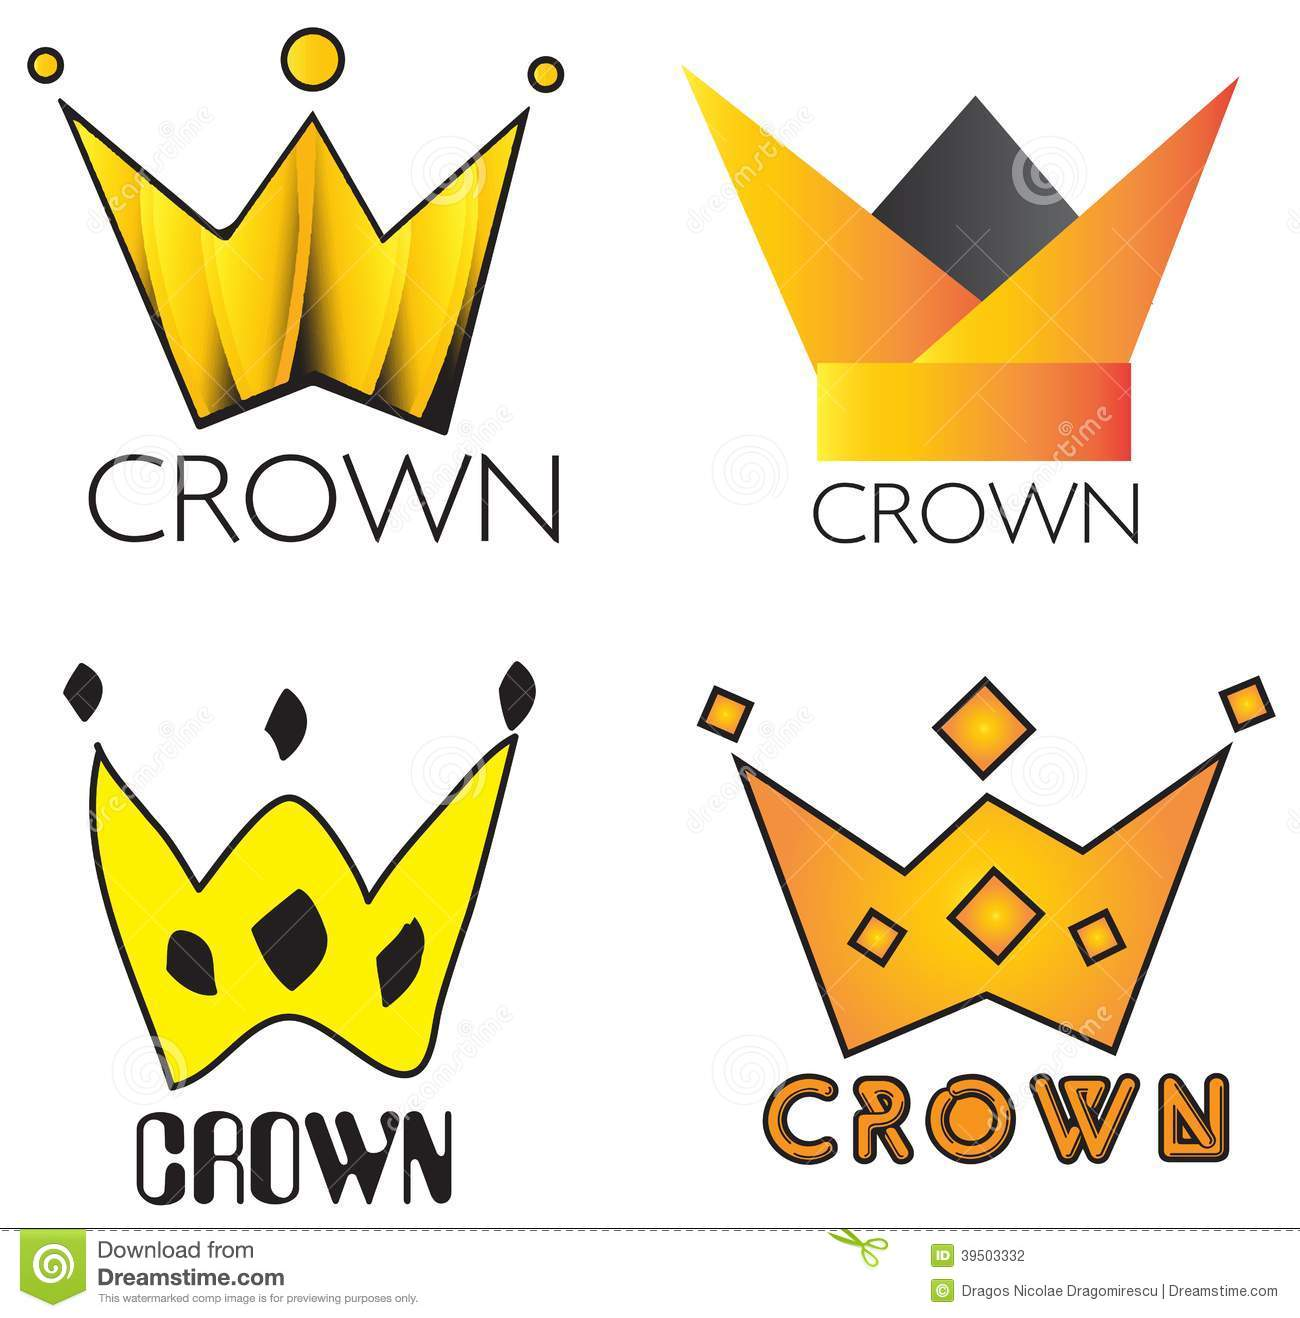 40 Creative King and Crown Logo Design inspiration for you | Logos ...